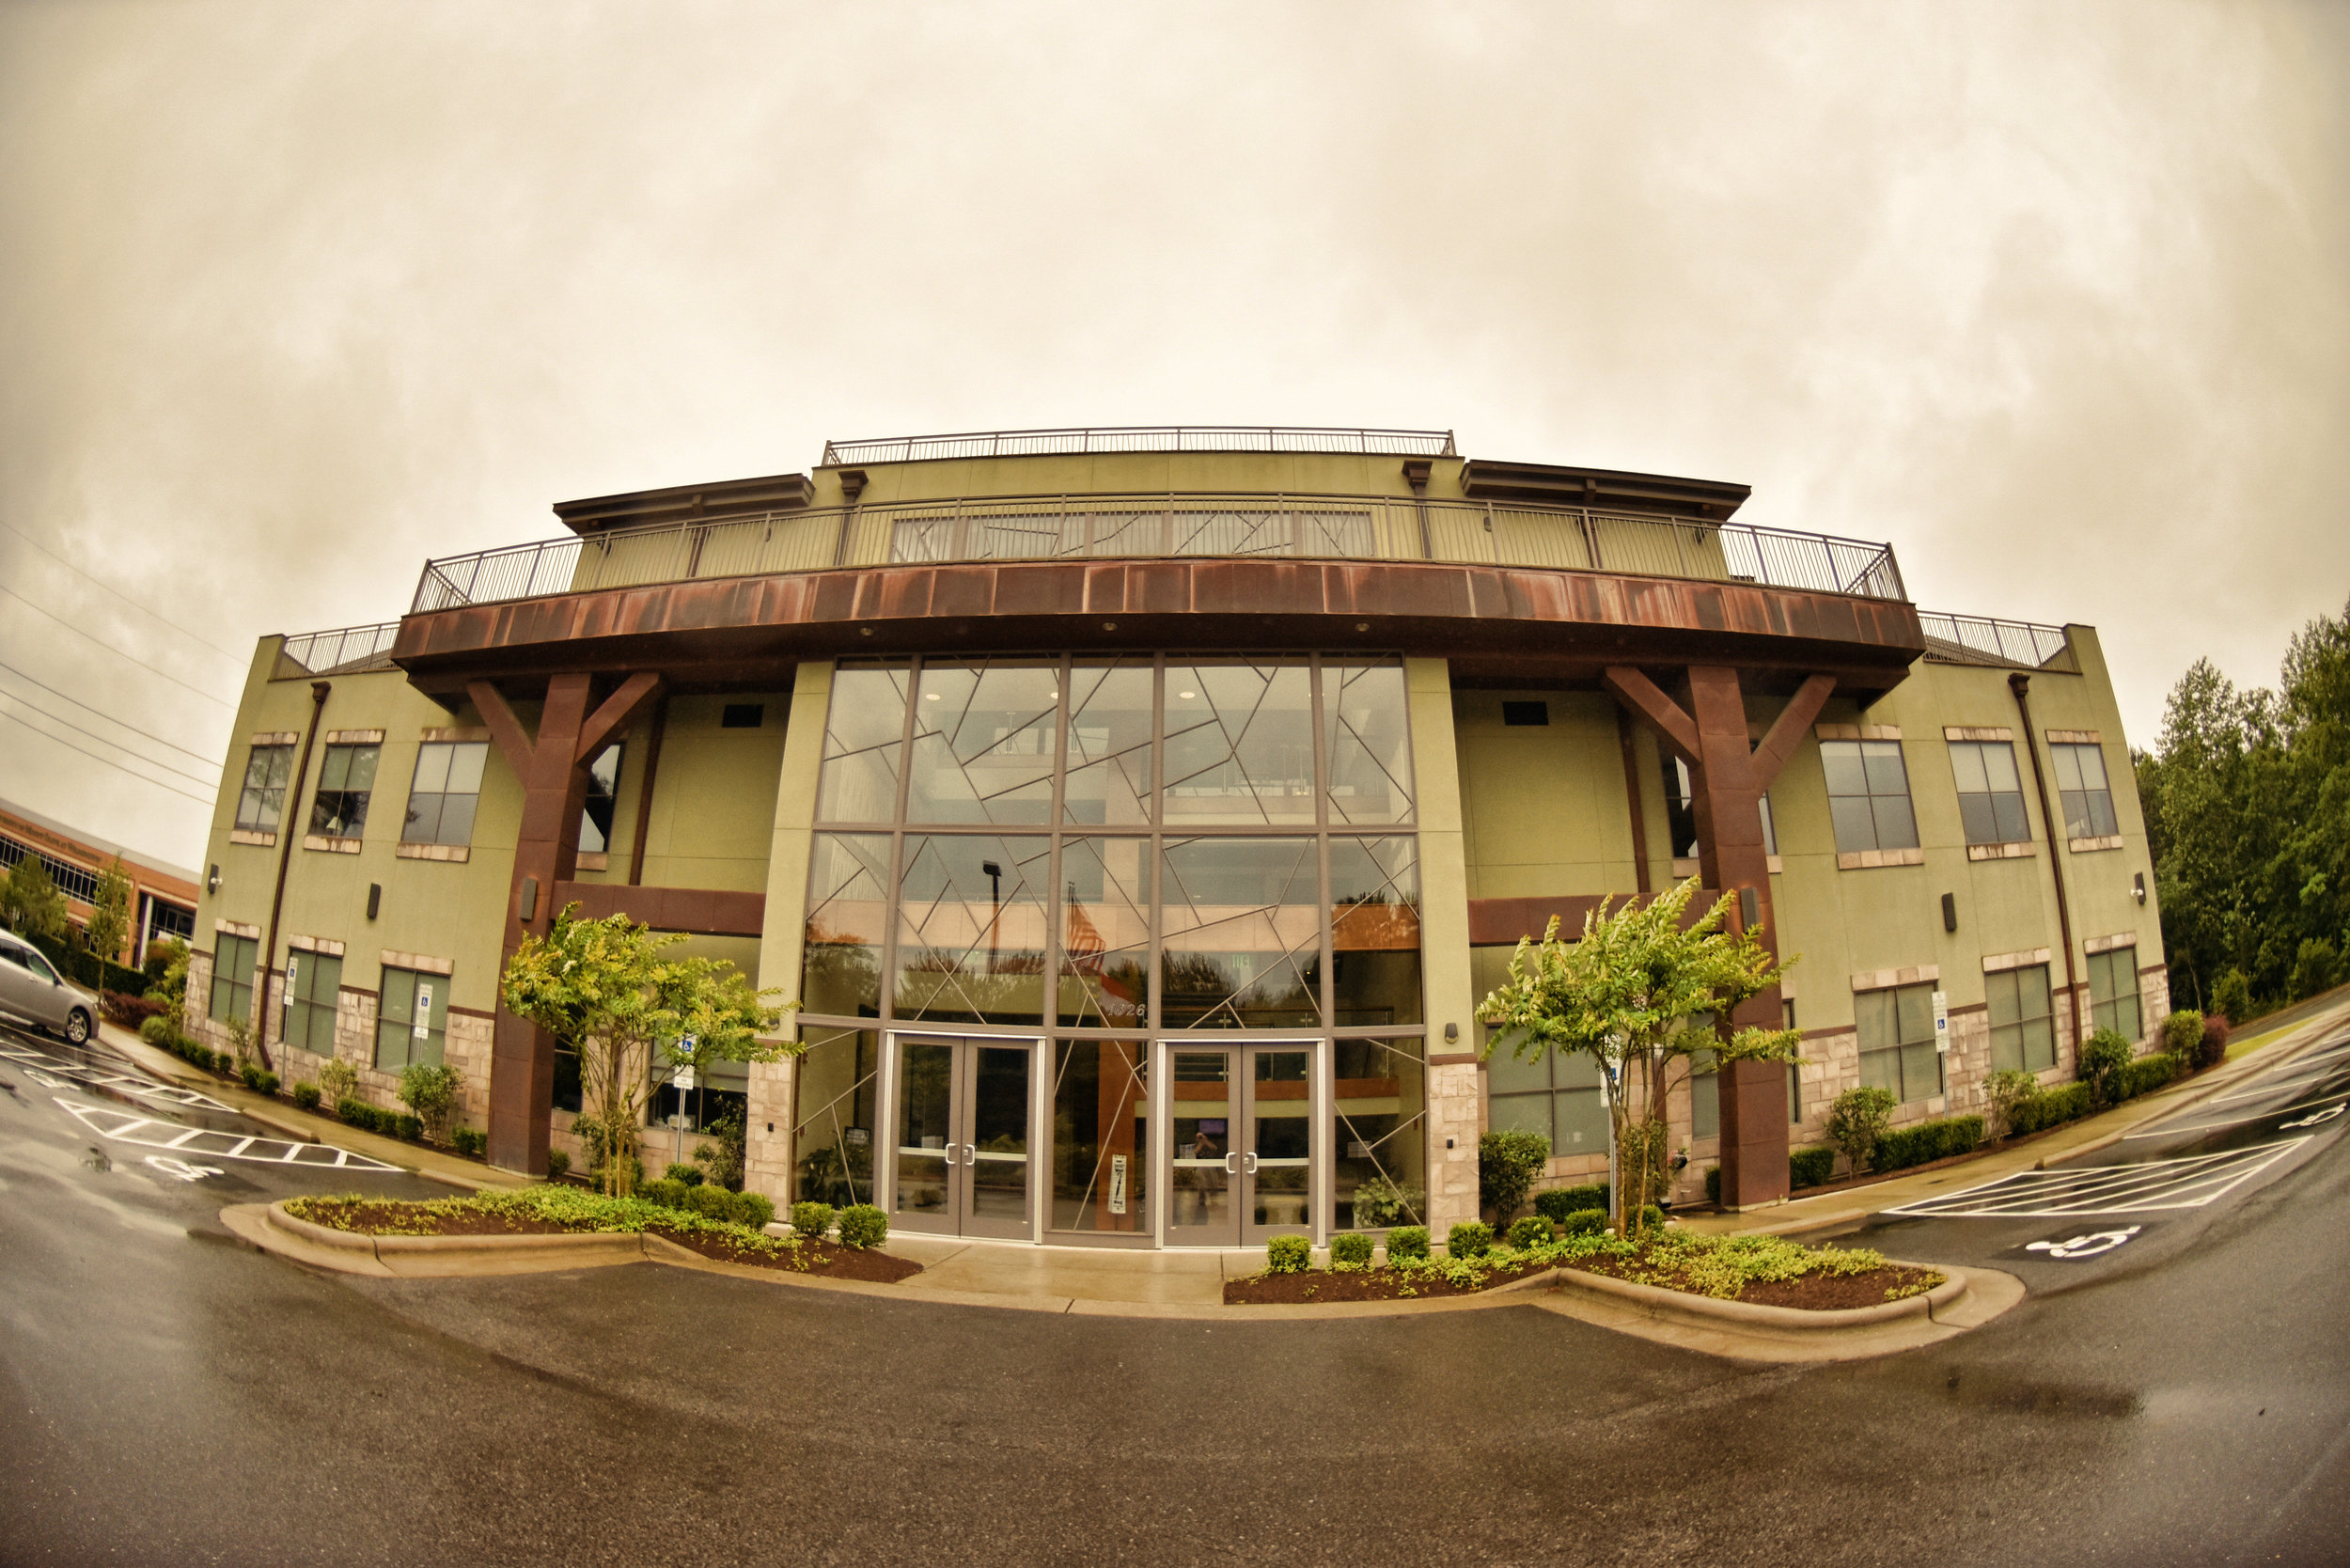 Fisheye - Fisheye perspective of the Terraces on Sir Tyler in Wilmington, NC.